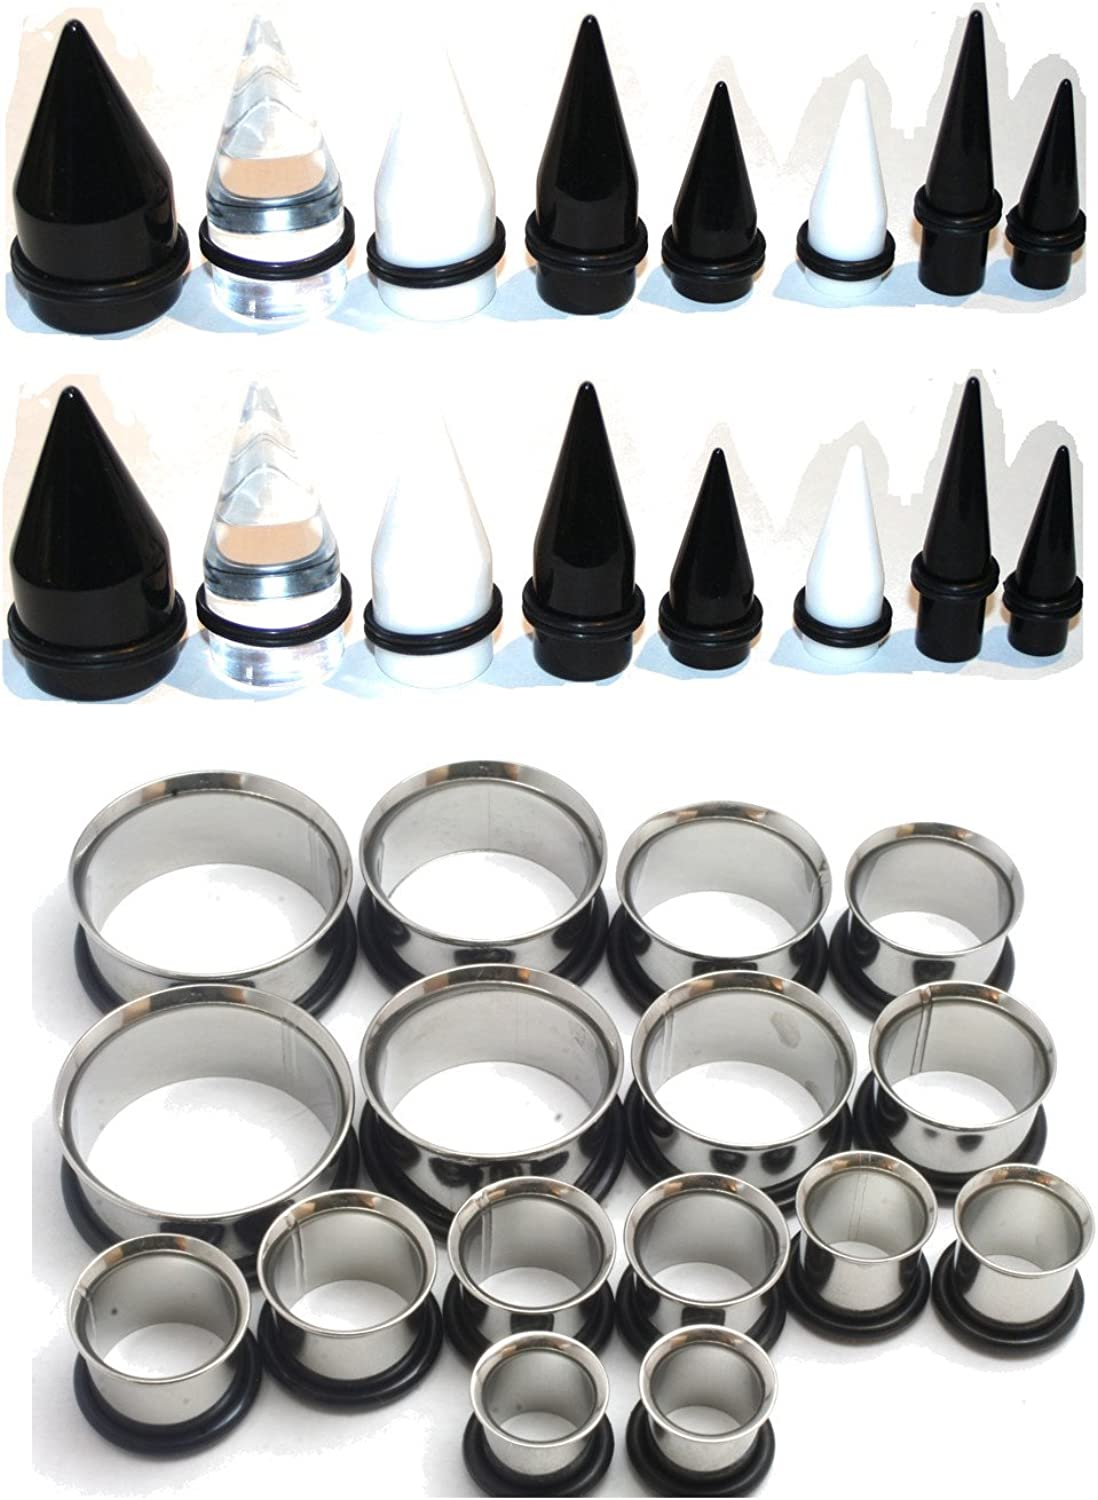 Zaya Body Jewelry 32pc 00g to 1 inch Ear Stretching Kit Black Clear White Tapers Steel Tunnels 7/16 1/2 9/16 5/8 3/4 7/8 1 Inch Plus Instructions